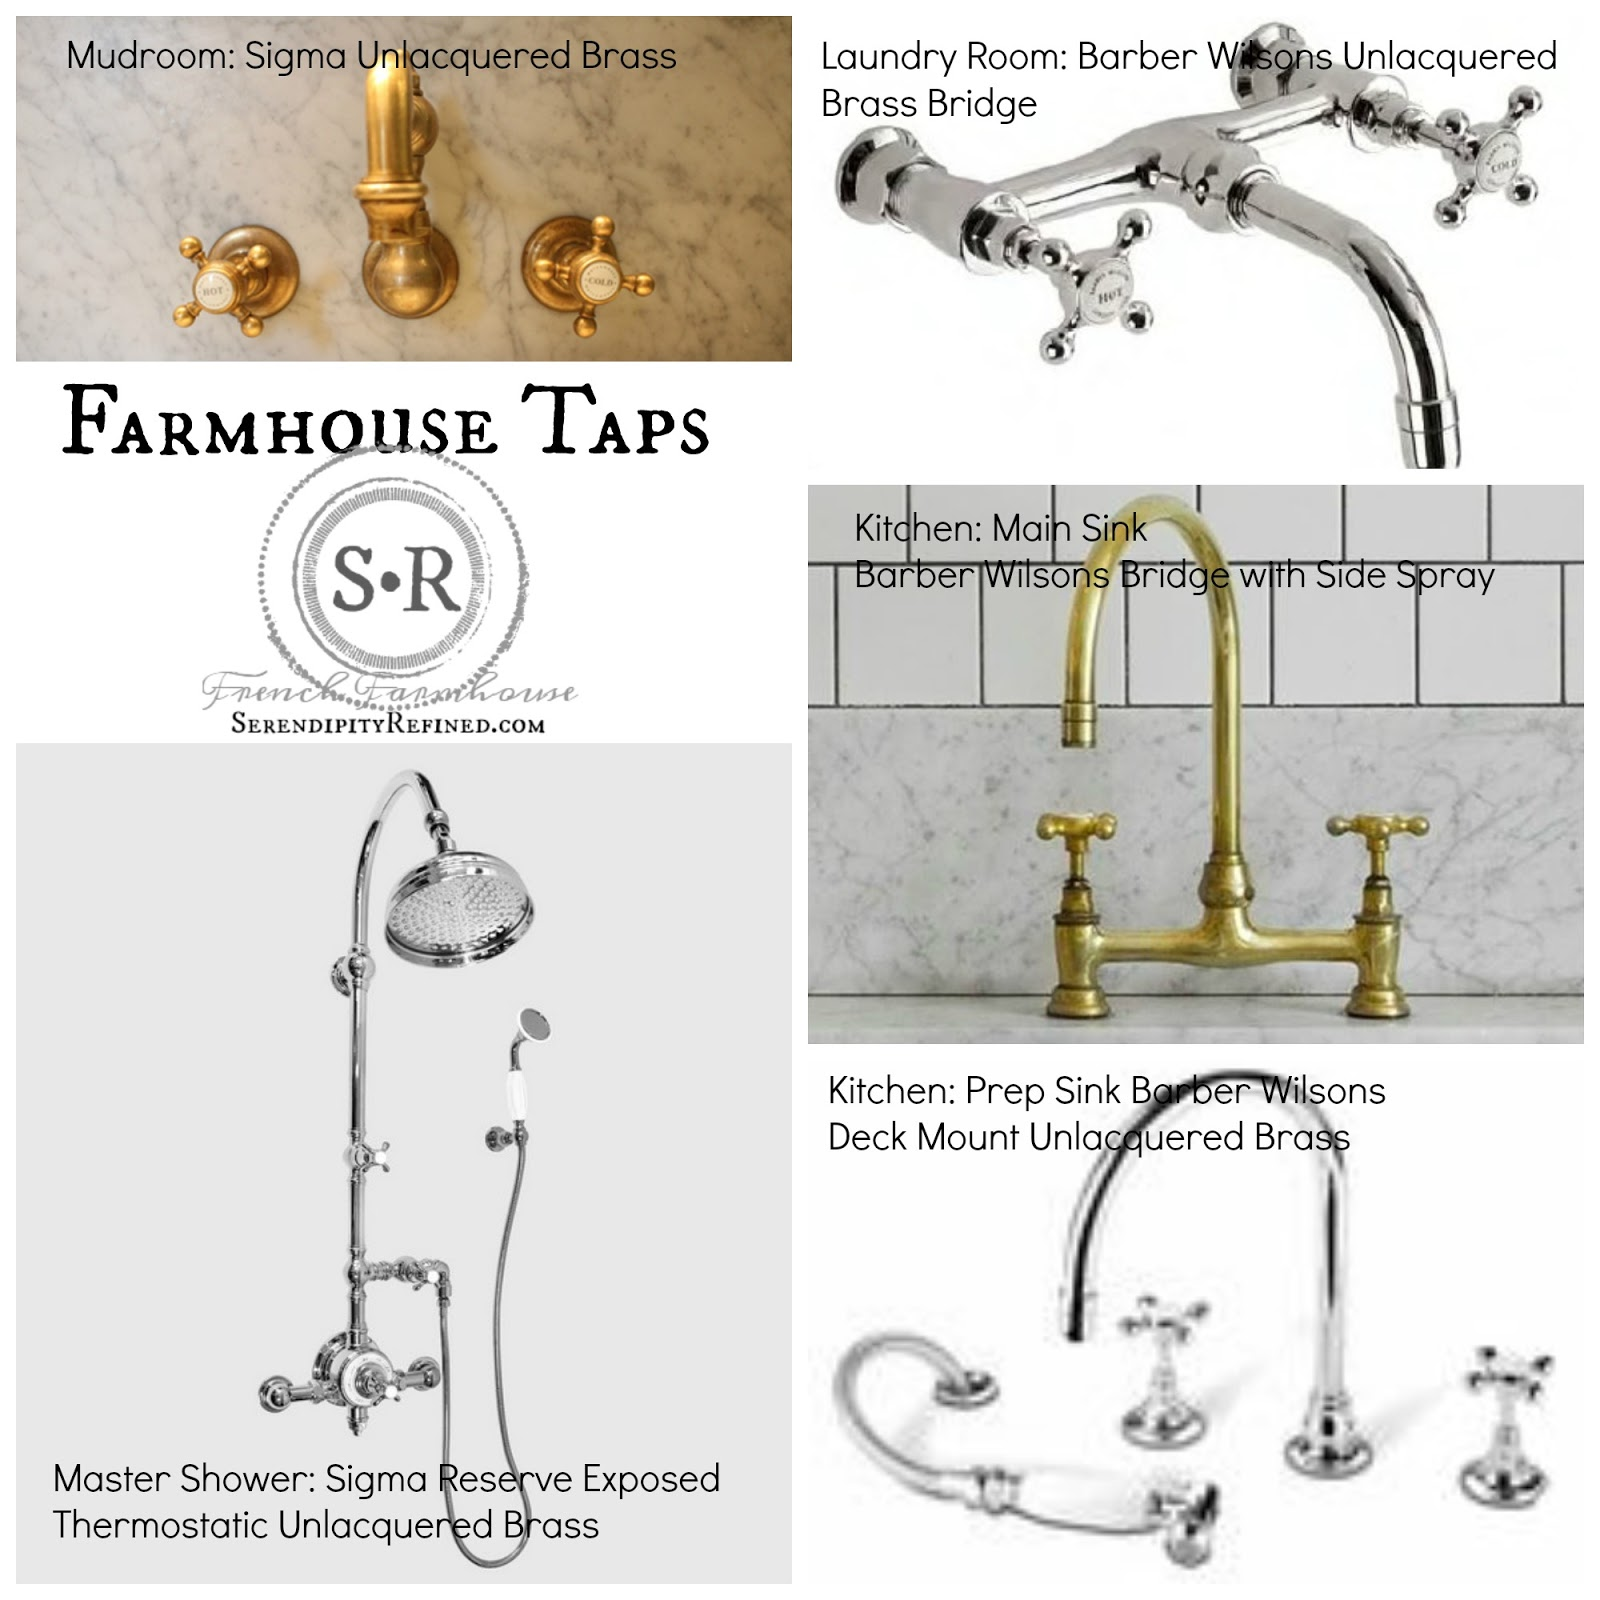 choosing plumbing fixtures for unlacquered brass kitchen faucet While unlacquered brass is gaining in popularity there are still relatively few sources in the market but many faucet manufacturers are adding brass tones